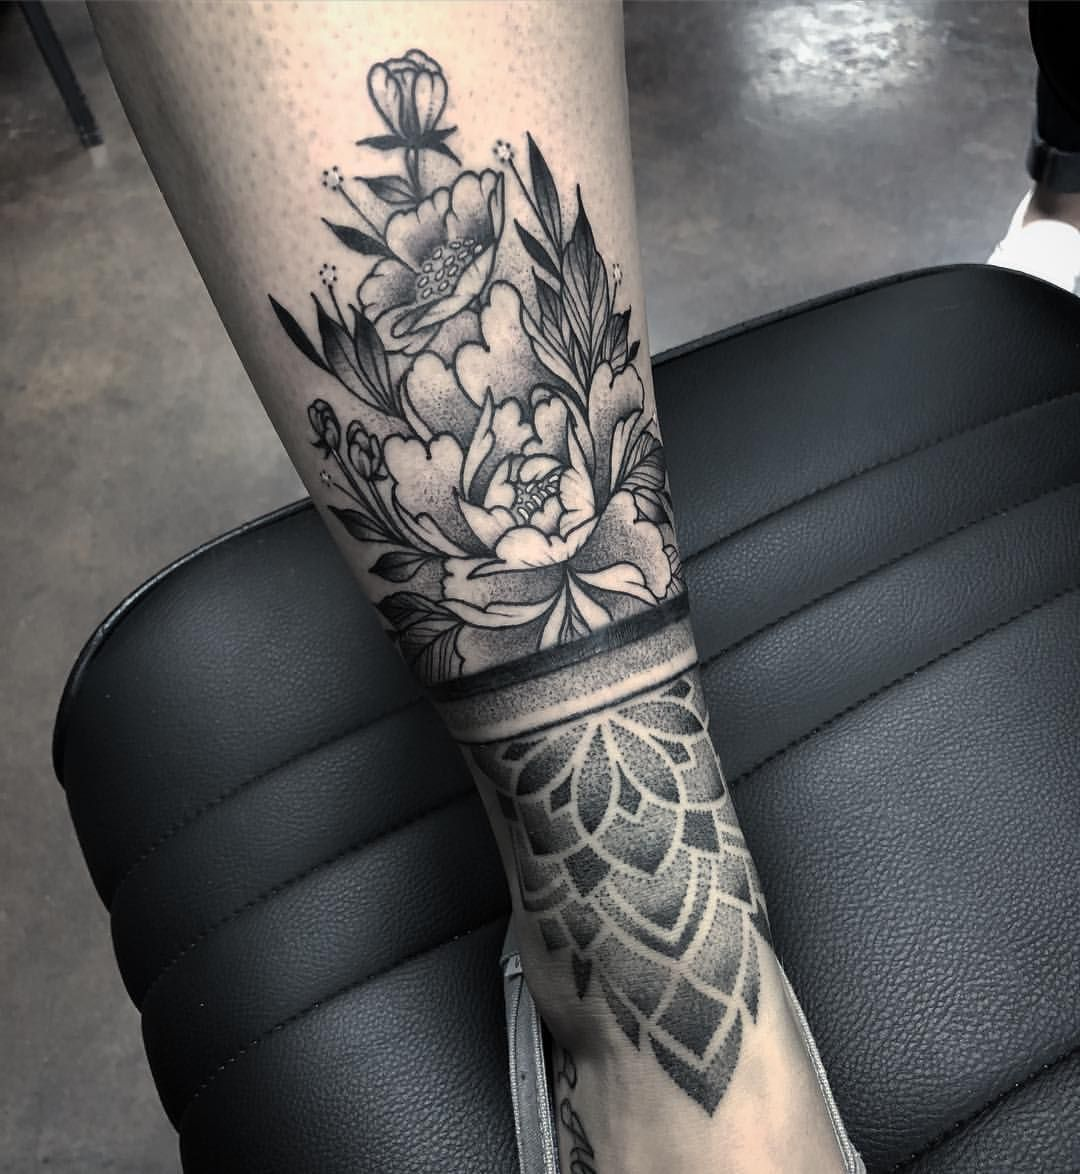 Added A Bit Of Floral To This Banded Ankle Piece Thanks Jessica Tattoo Tattooer Tattoos Ladytattooers Blackwork Ankle Band Tattoo Band Tattoo Tattoos